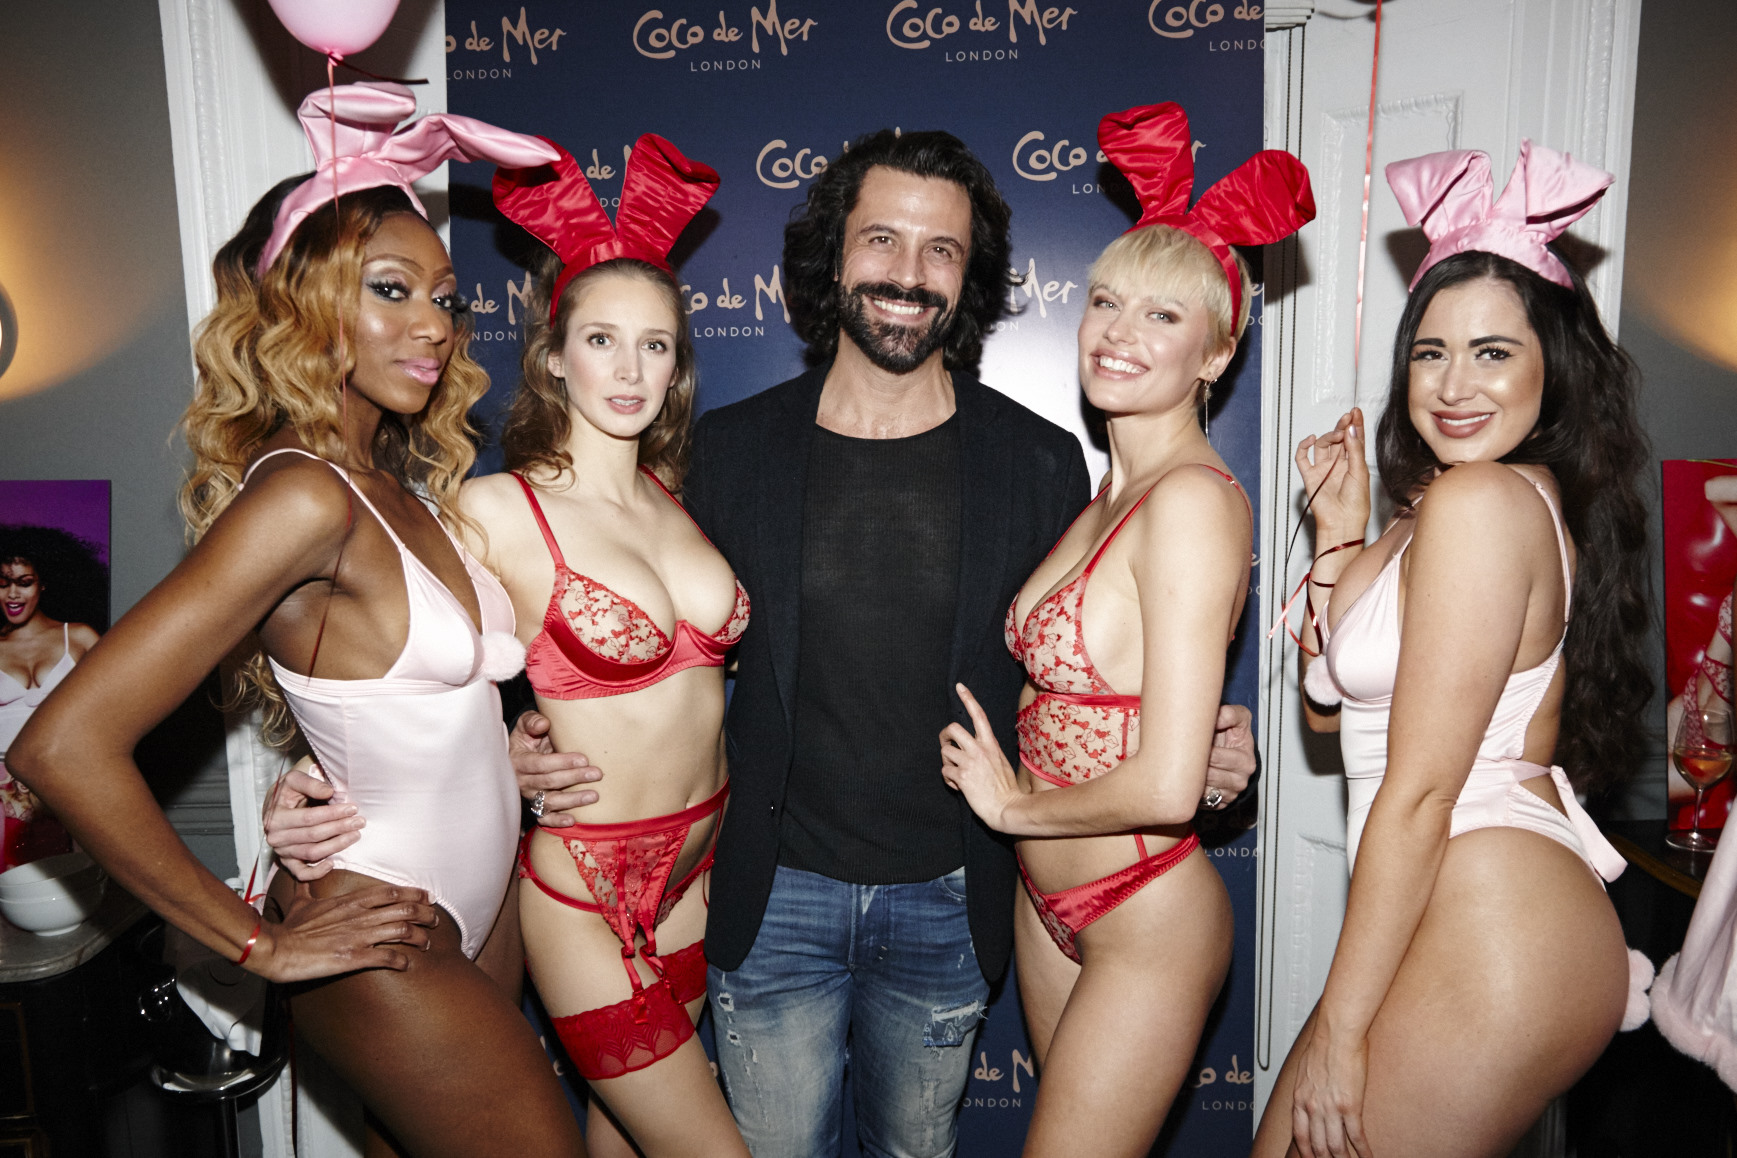 Actor christian Vit with models Coco De Mer Lingerie Playboy SS19 Party